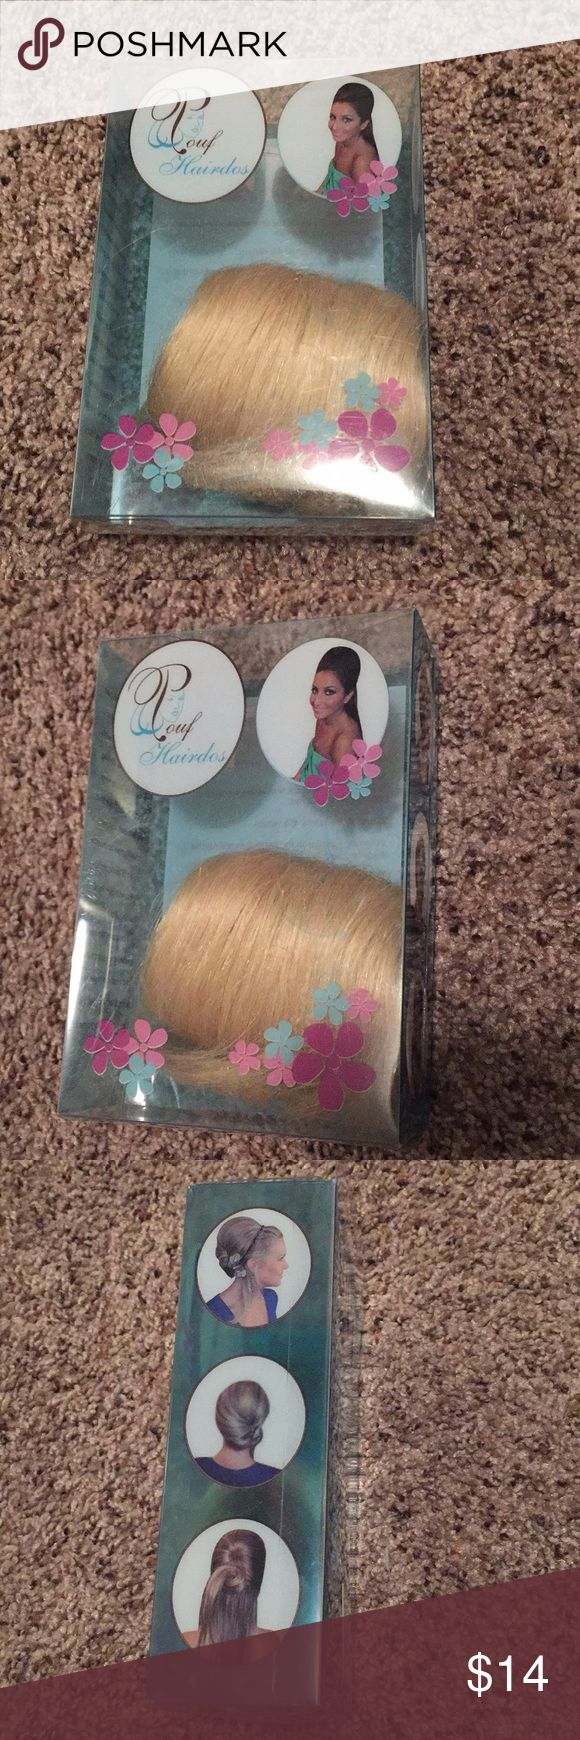 Blonde comb in pouff hair extension Easy and cute blond comb in pouf hair extension  New in box Accessories Hair Accessories